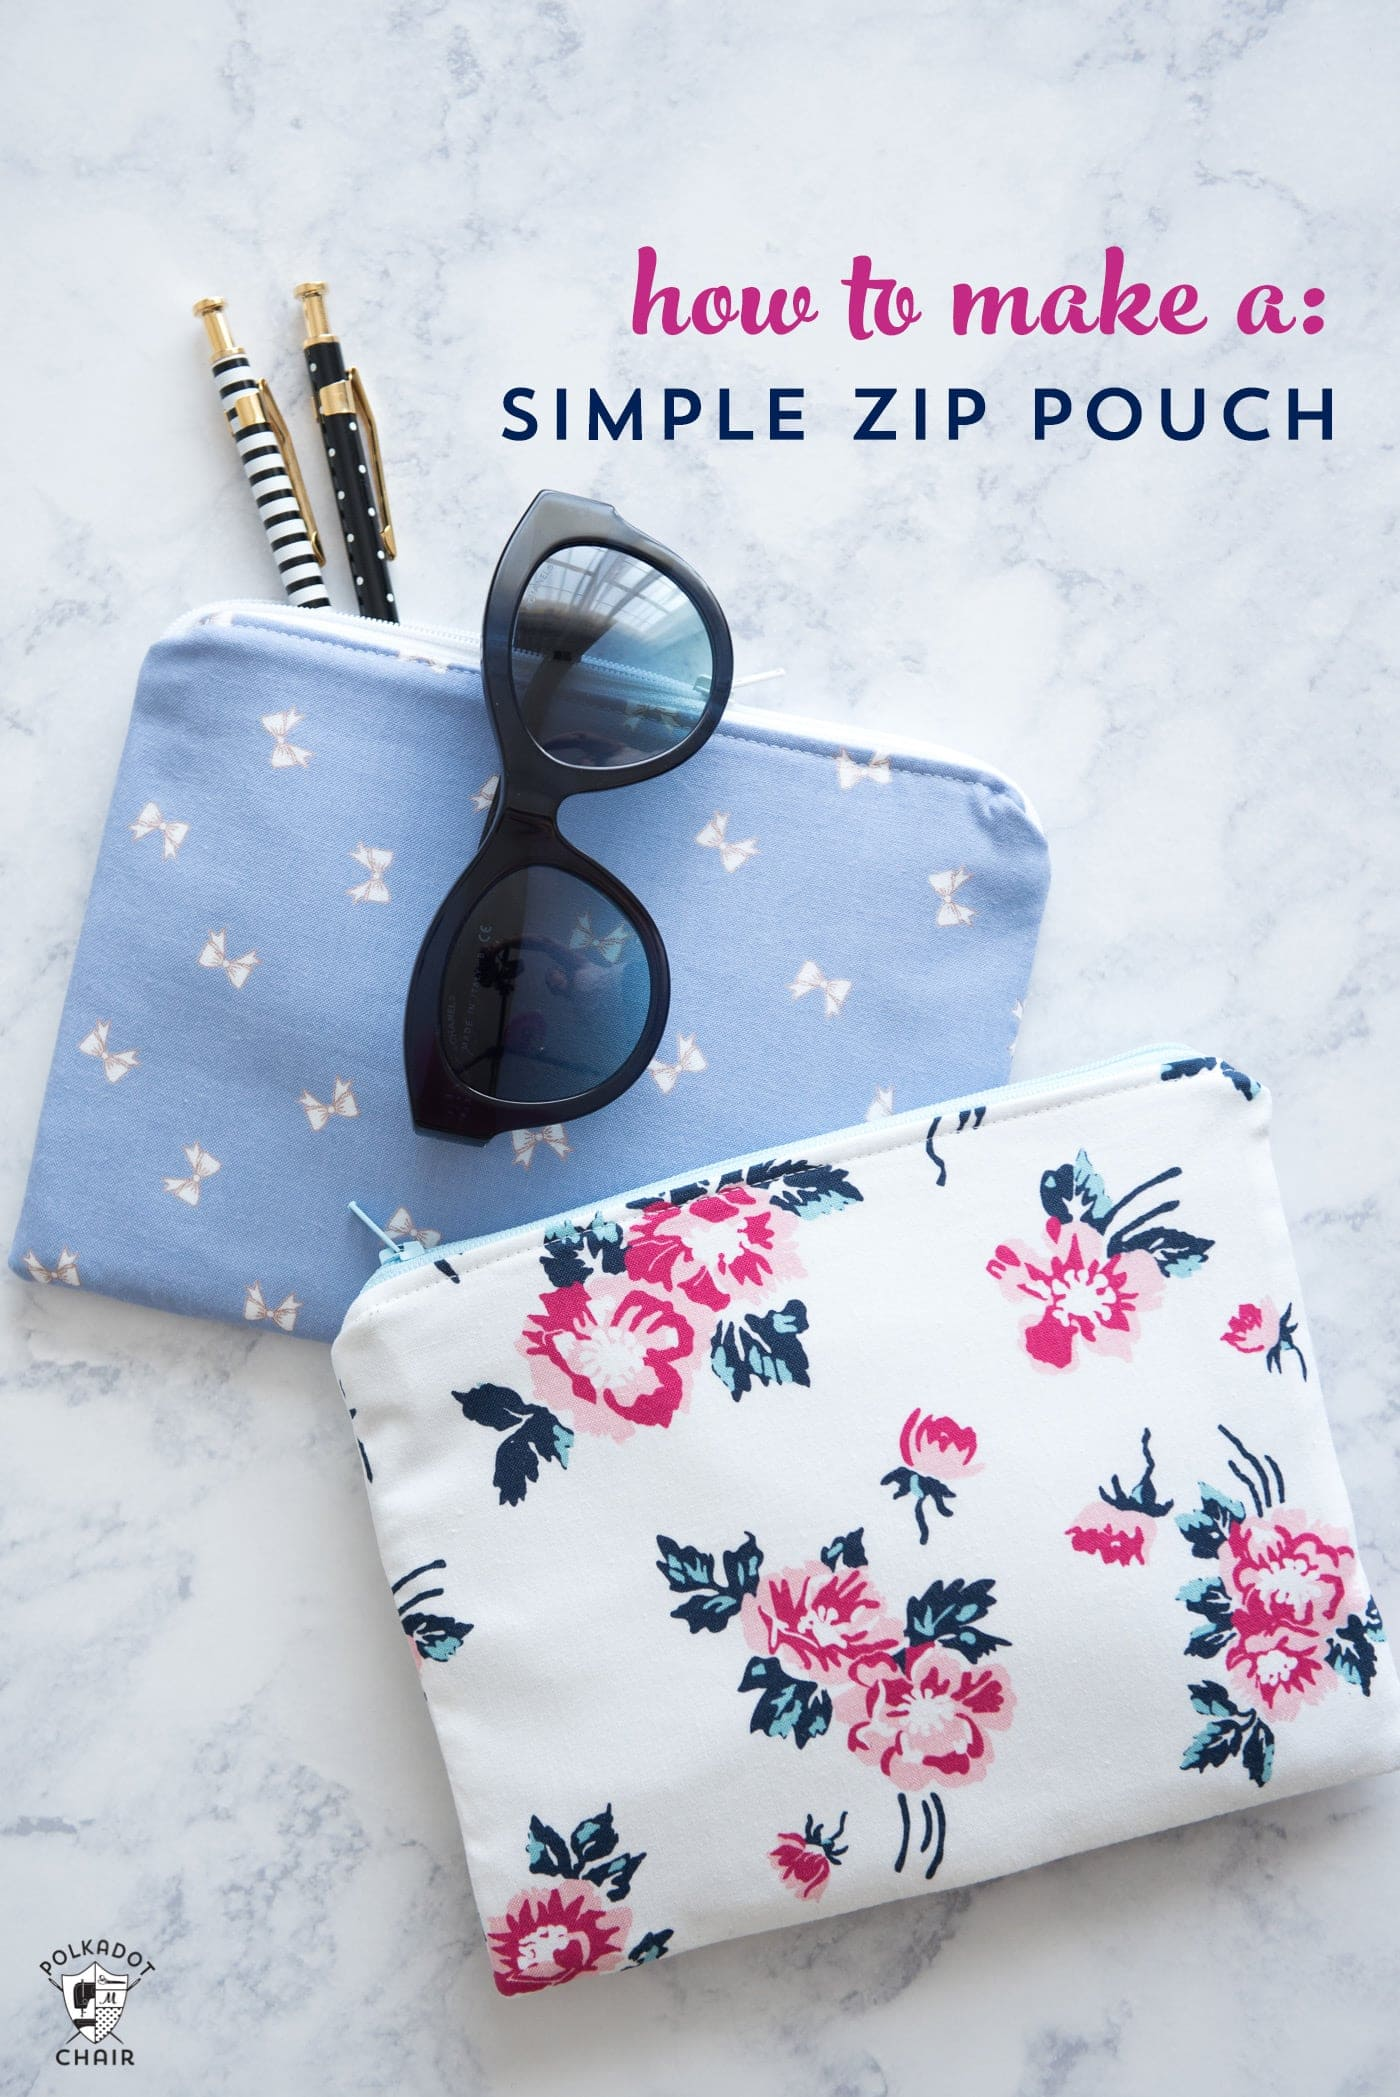 Simple Zipper Pouch Tutorial